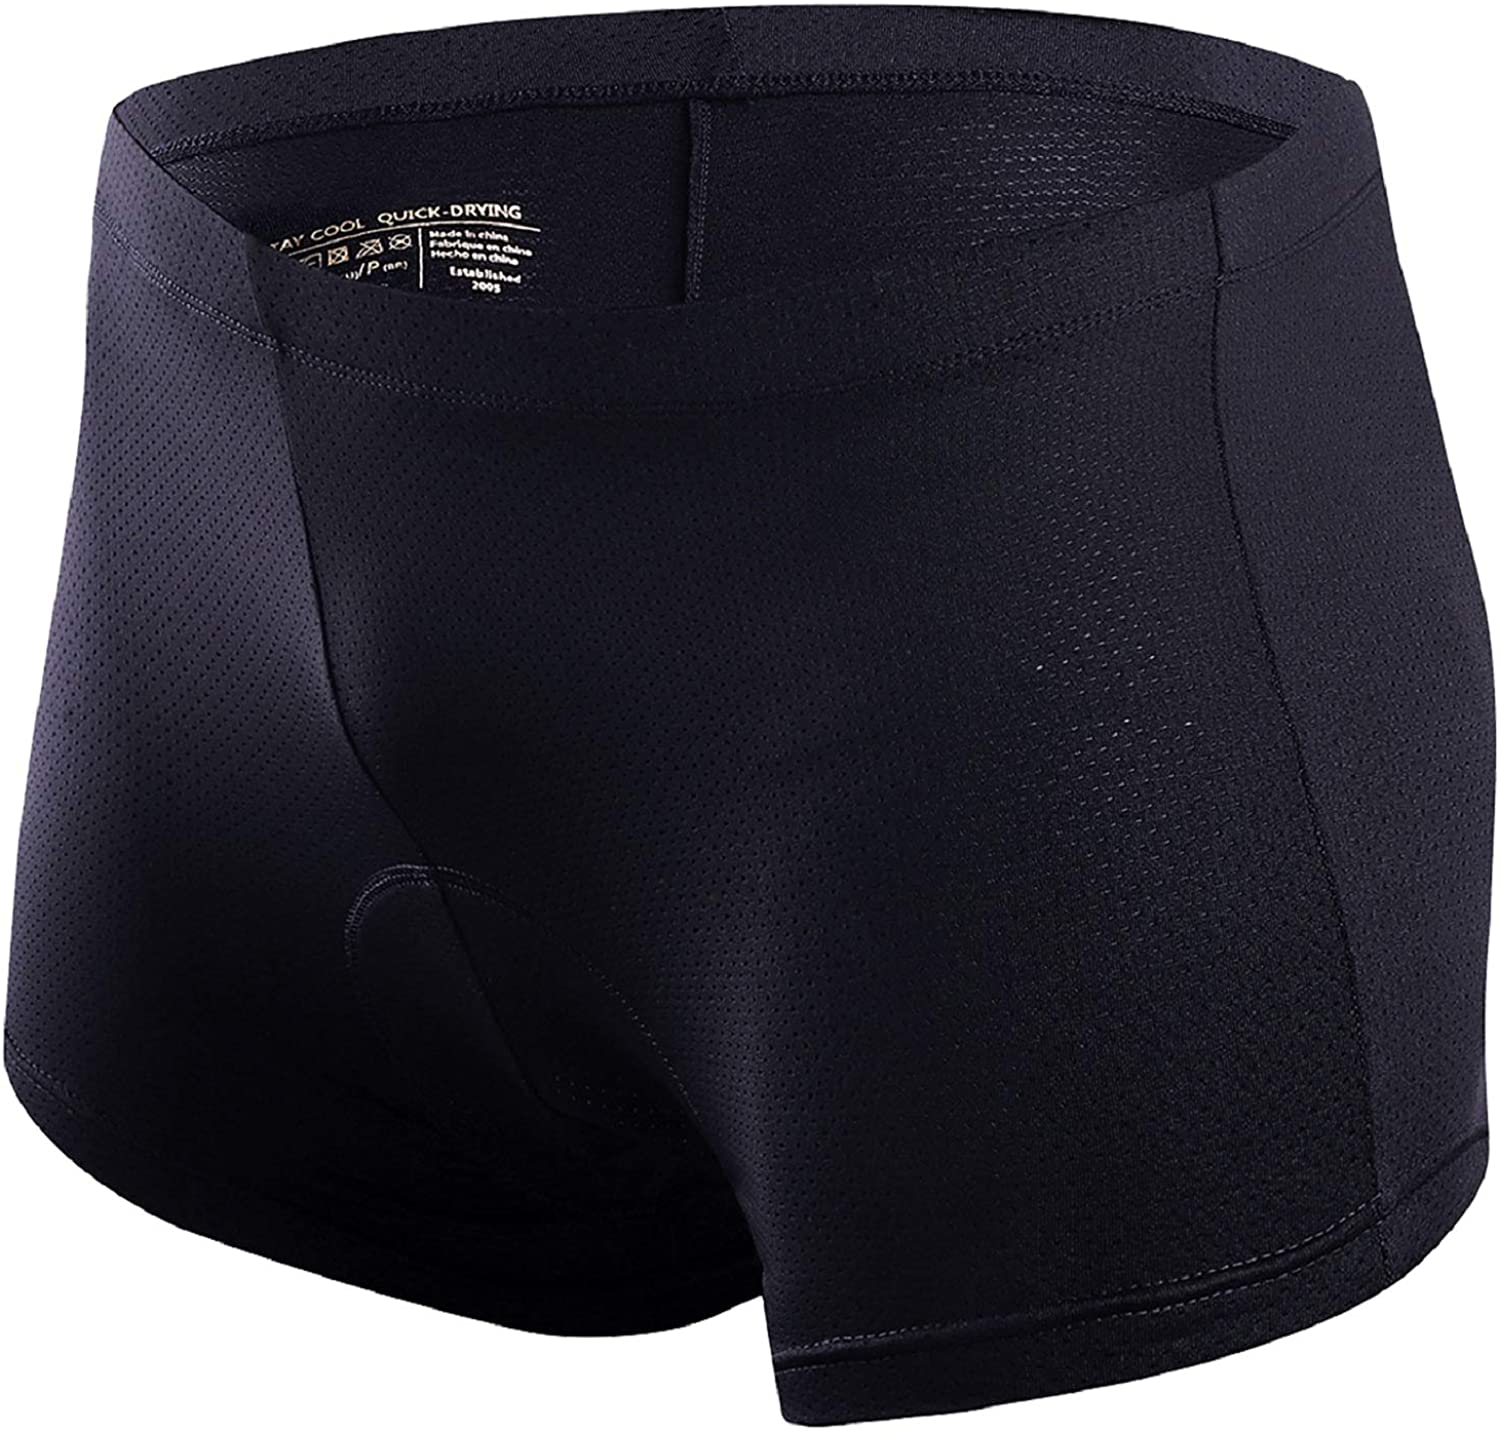 DREAMYOGA Men's Cycling Max 50% OFF Underwear Shorts Mes Soft 3D Limited Special Price Padded